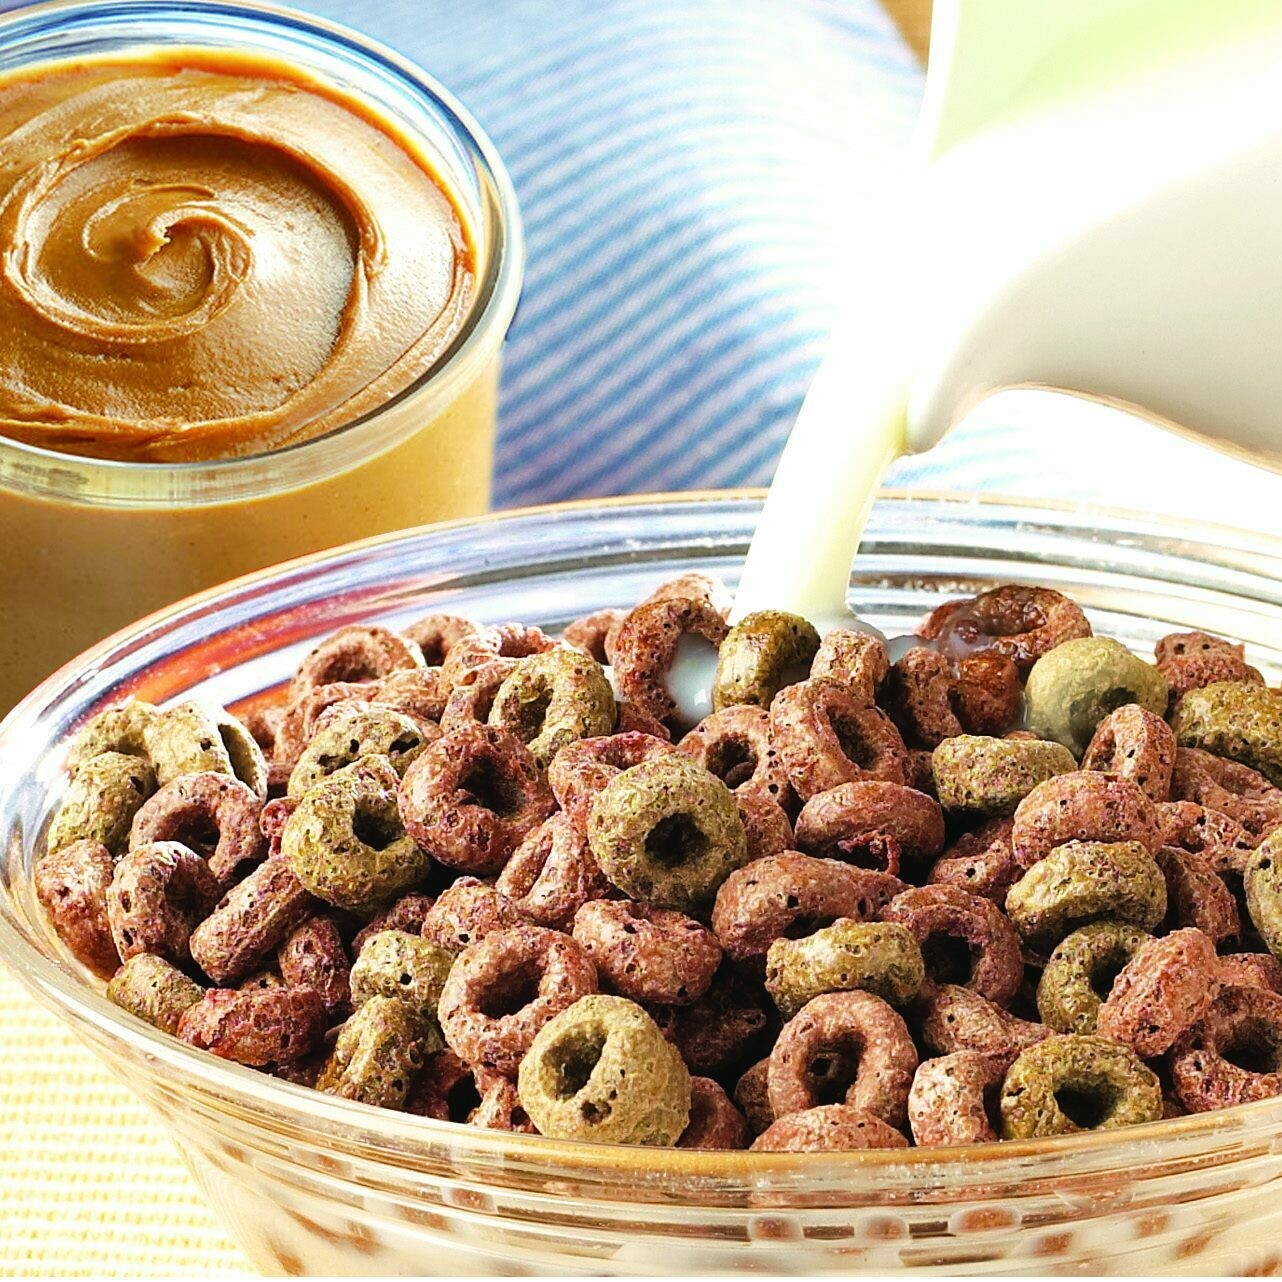 Chocolate Peanut Butter Cereal - High Protein